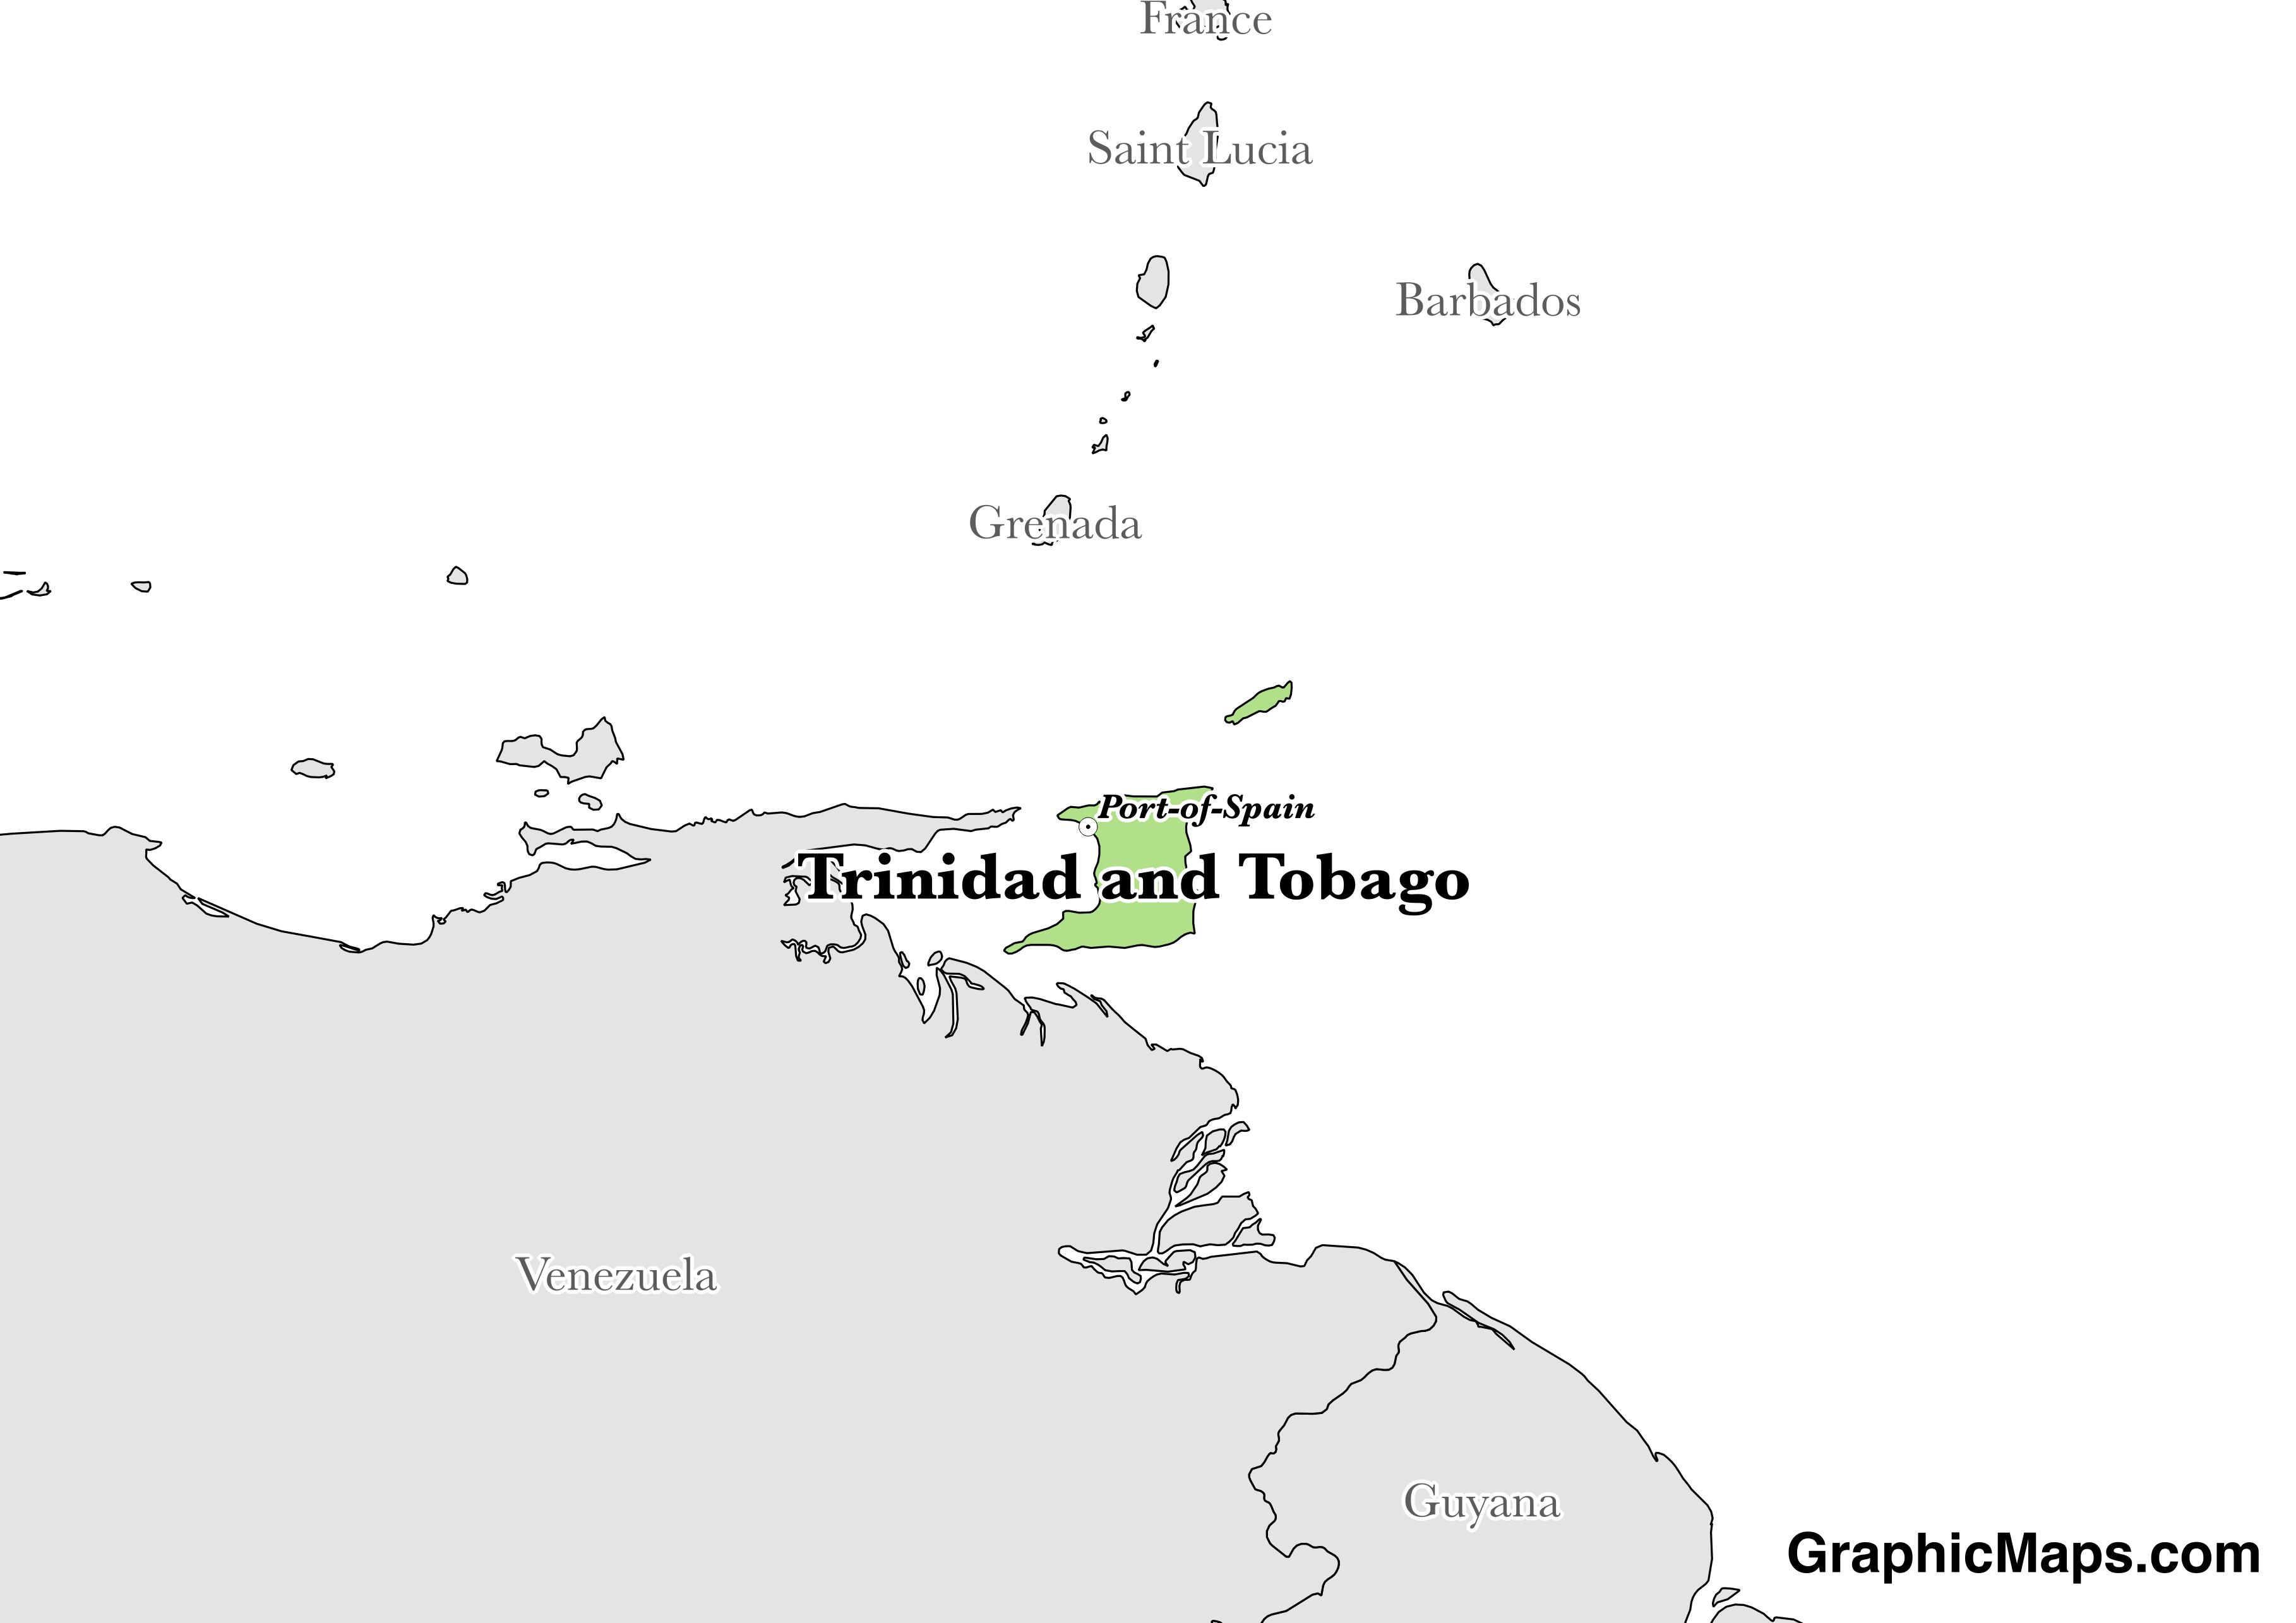 Map showing the location of Trinidad and Tobago